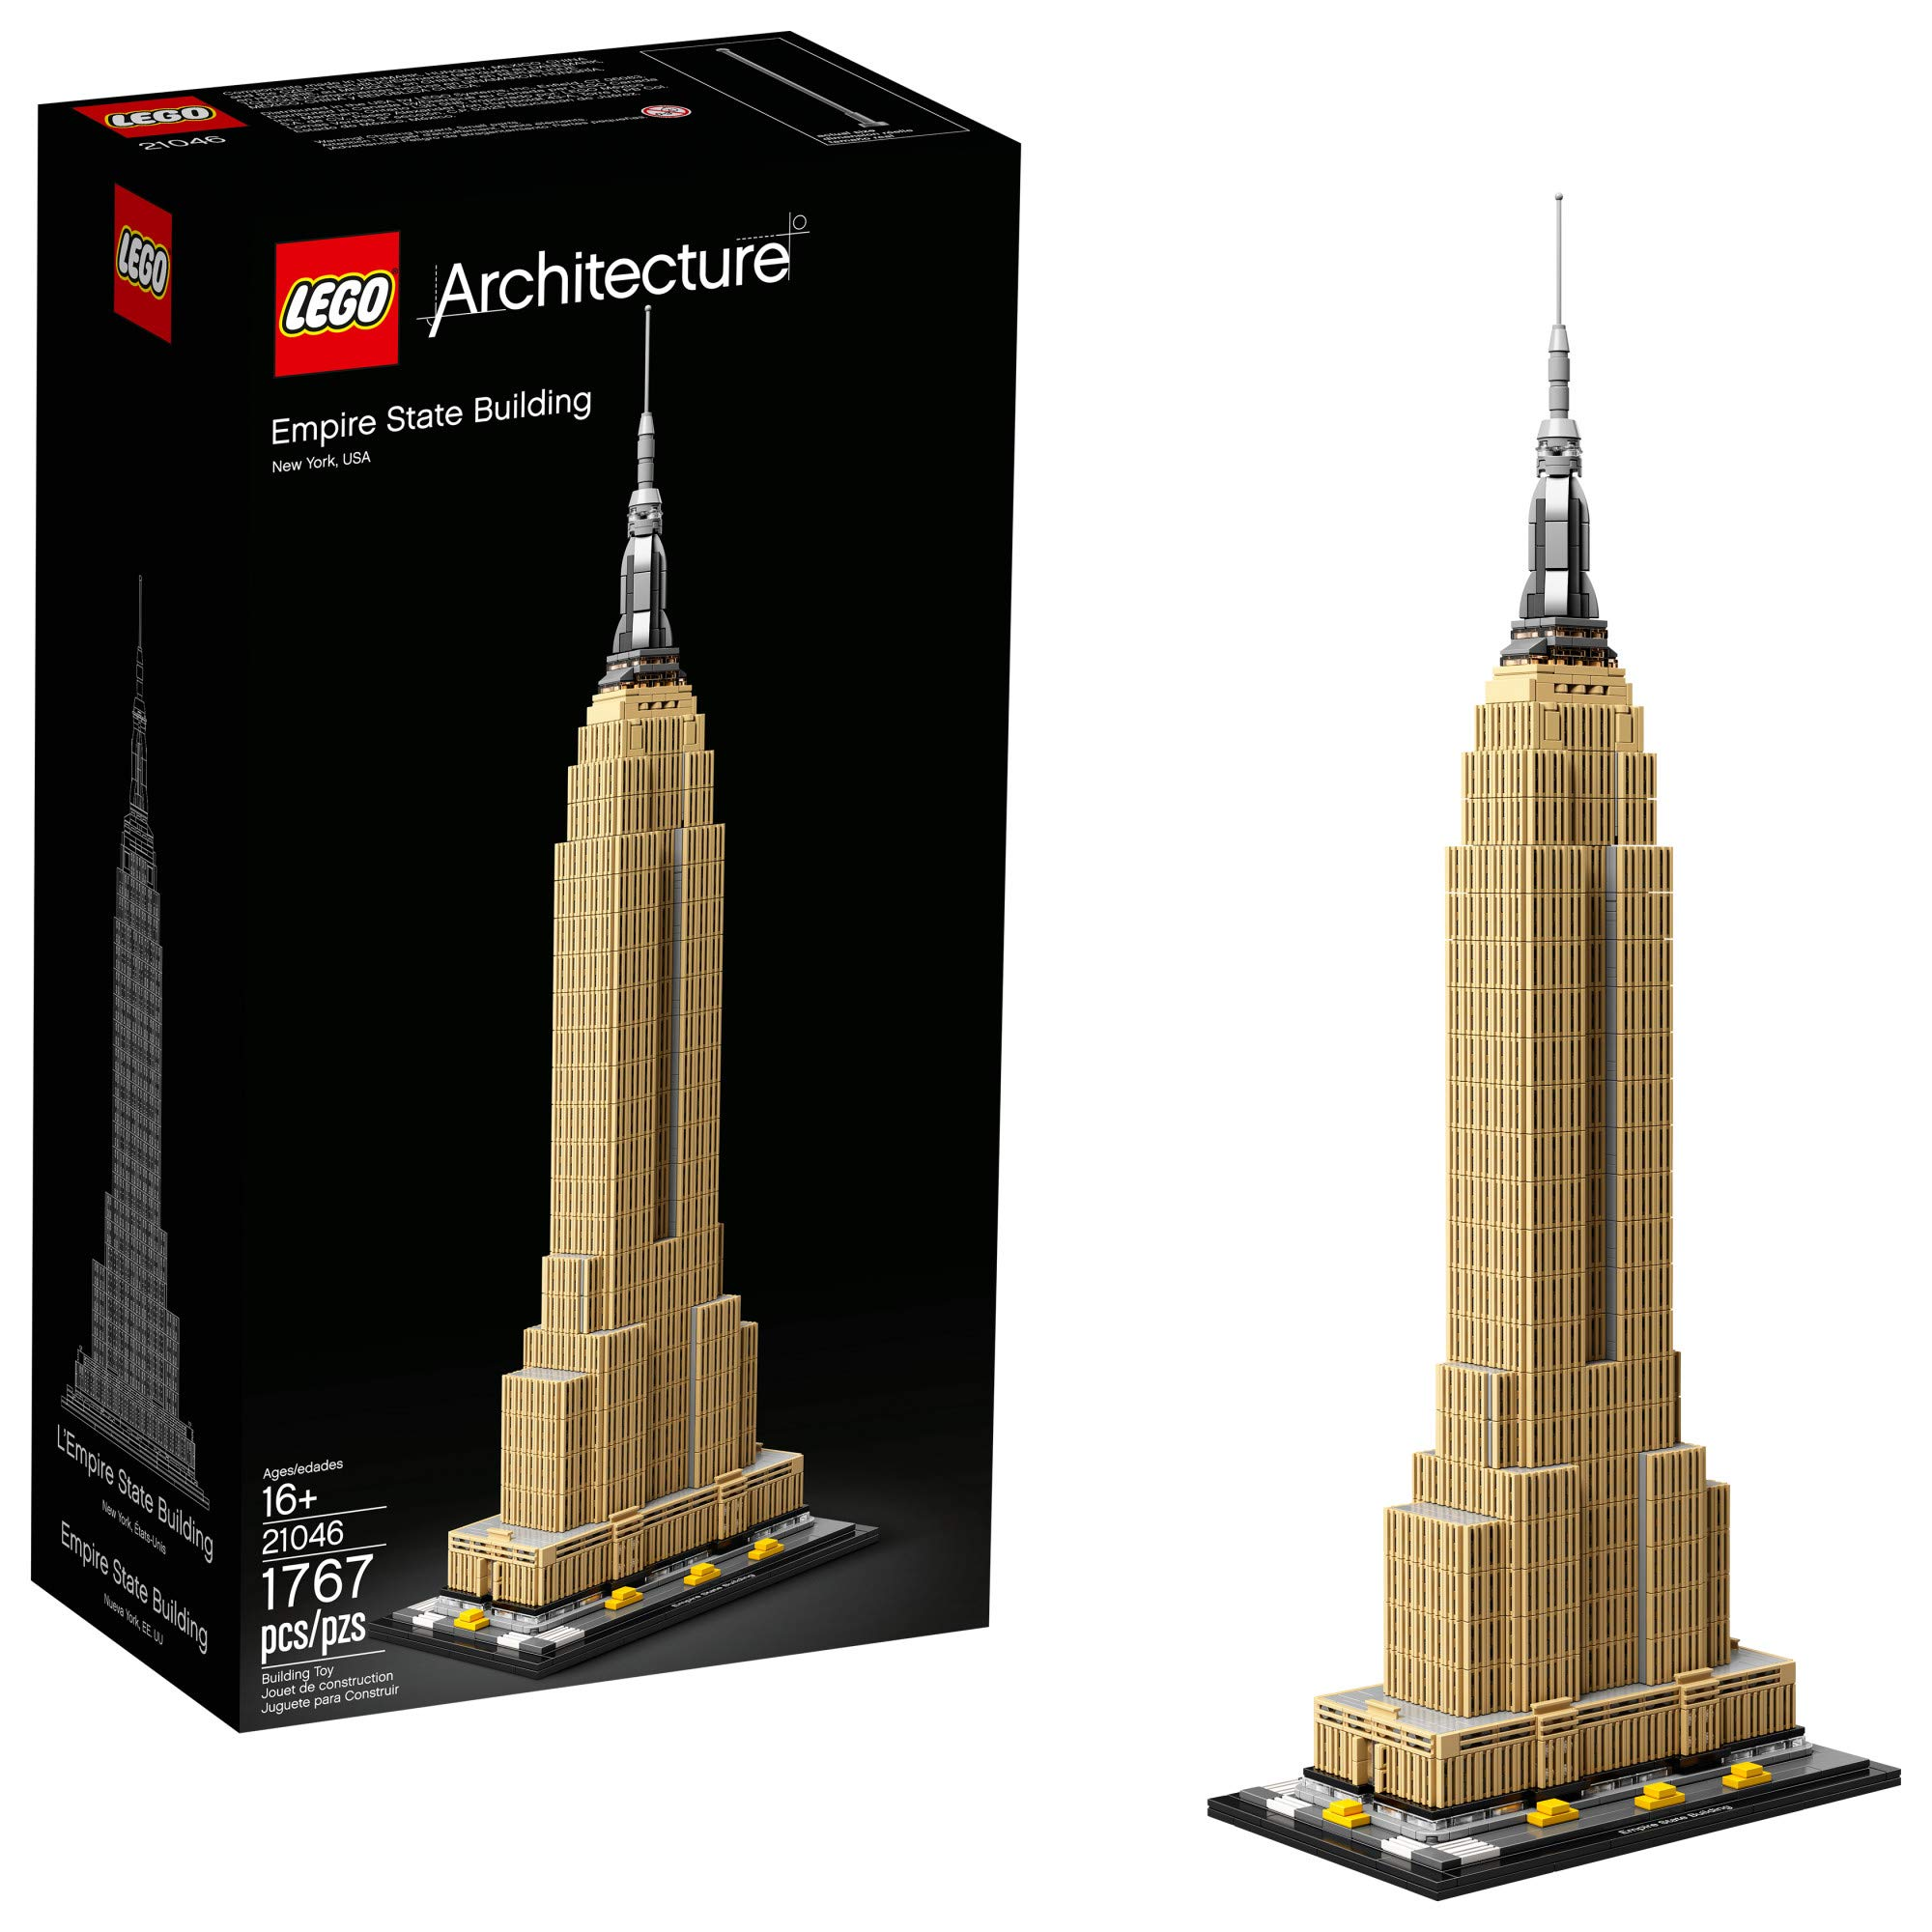 LEGO Architecture Empire State Building 21046 Ciudad de Nueva York Skyline Architecture Model Kit para adultos y niños, Build It Yourself Model Skyscraper (1767 Piezas)